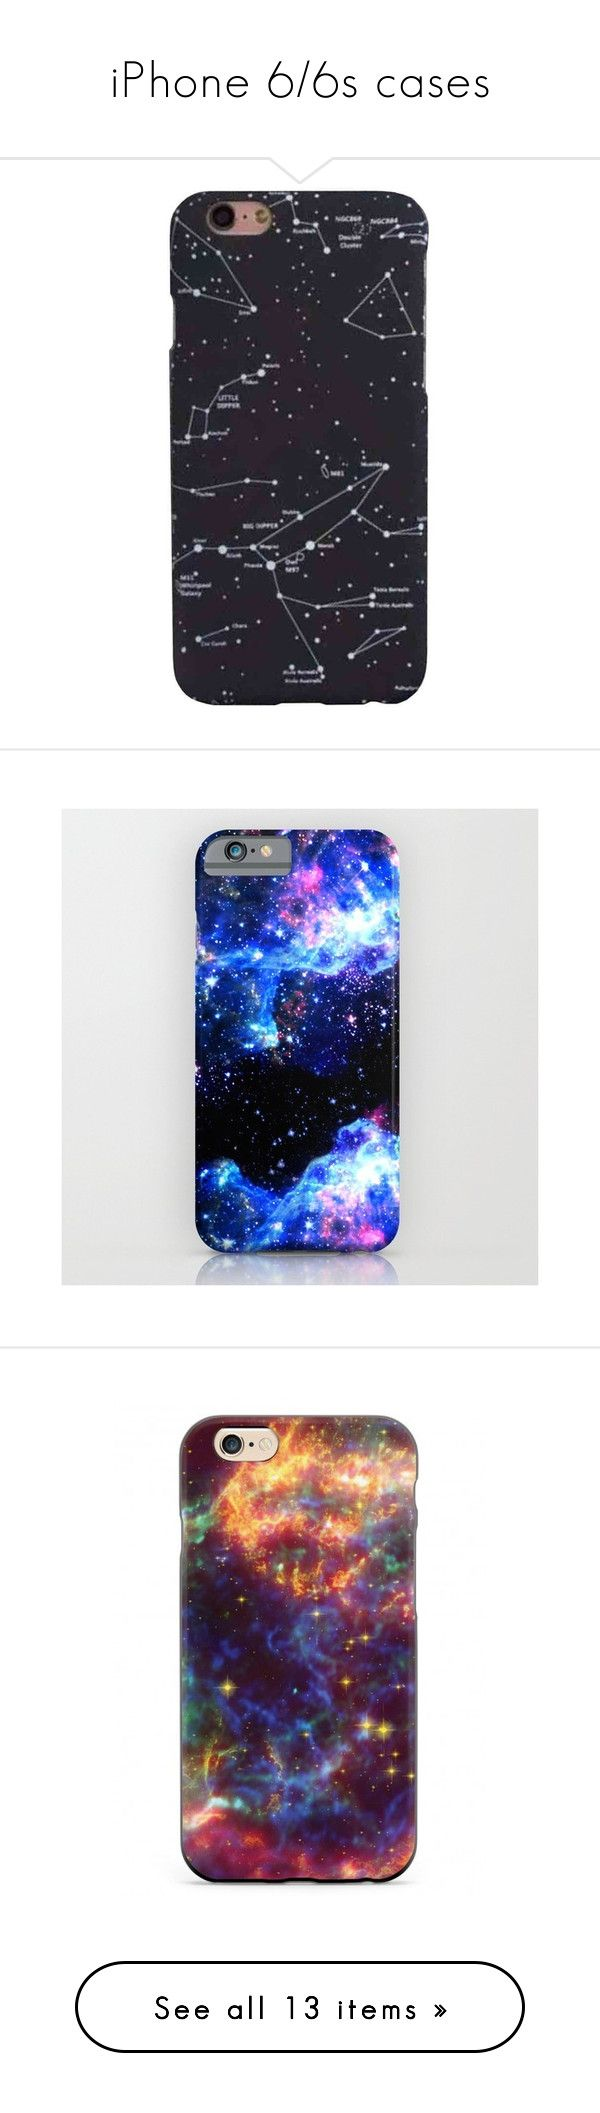 """""""iPhone 6/6s cases"""" by theloopweaver ❤ liked on Polyvore featuring Phones, cases, iPhones, tech, accessories, tech accessories, phone cases, phones, iphone & ipod cases and iphone cases"""